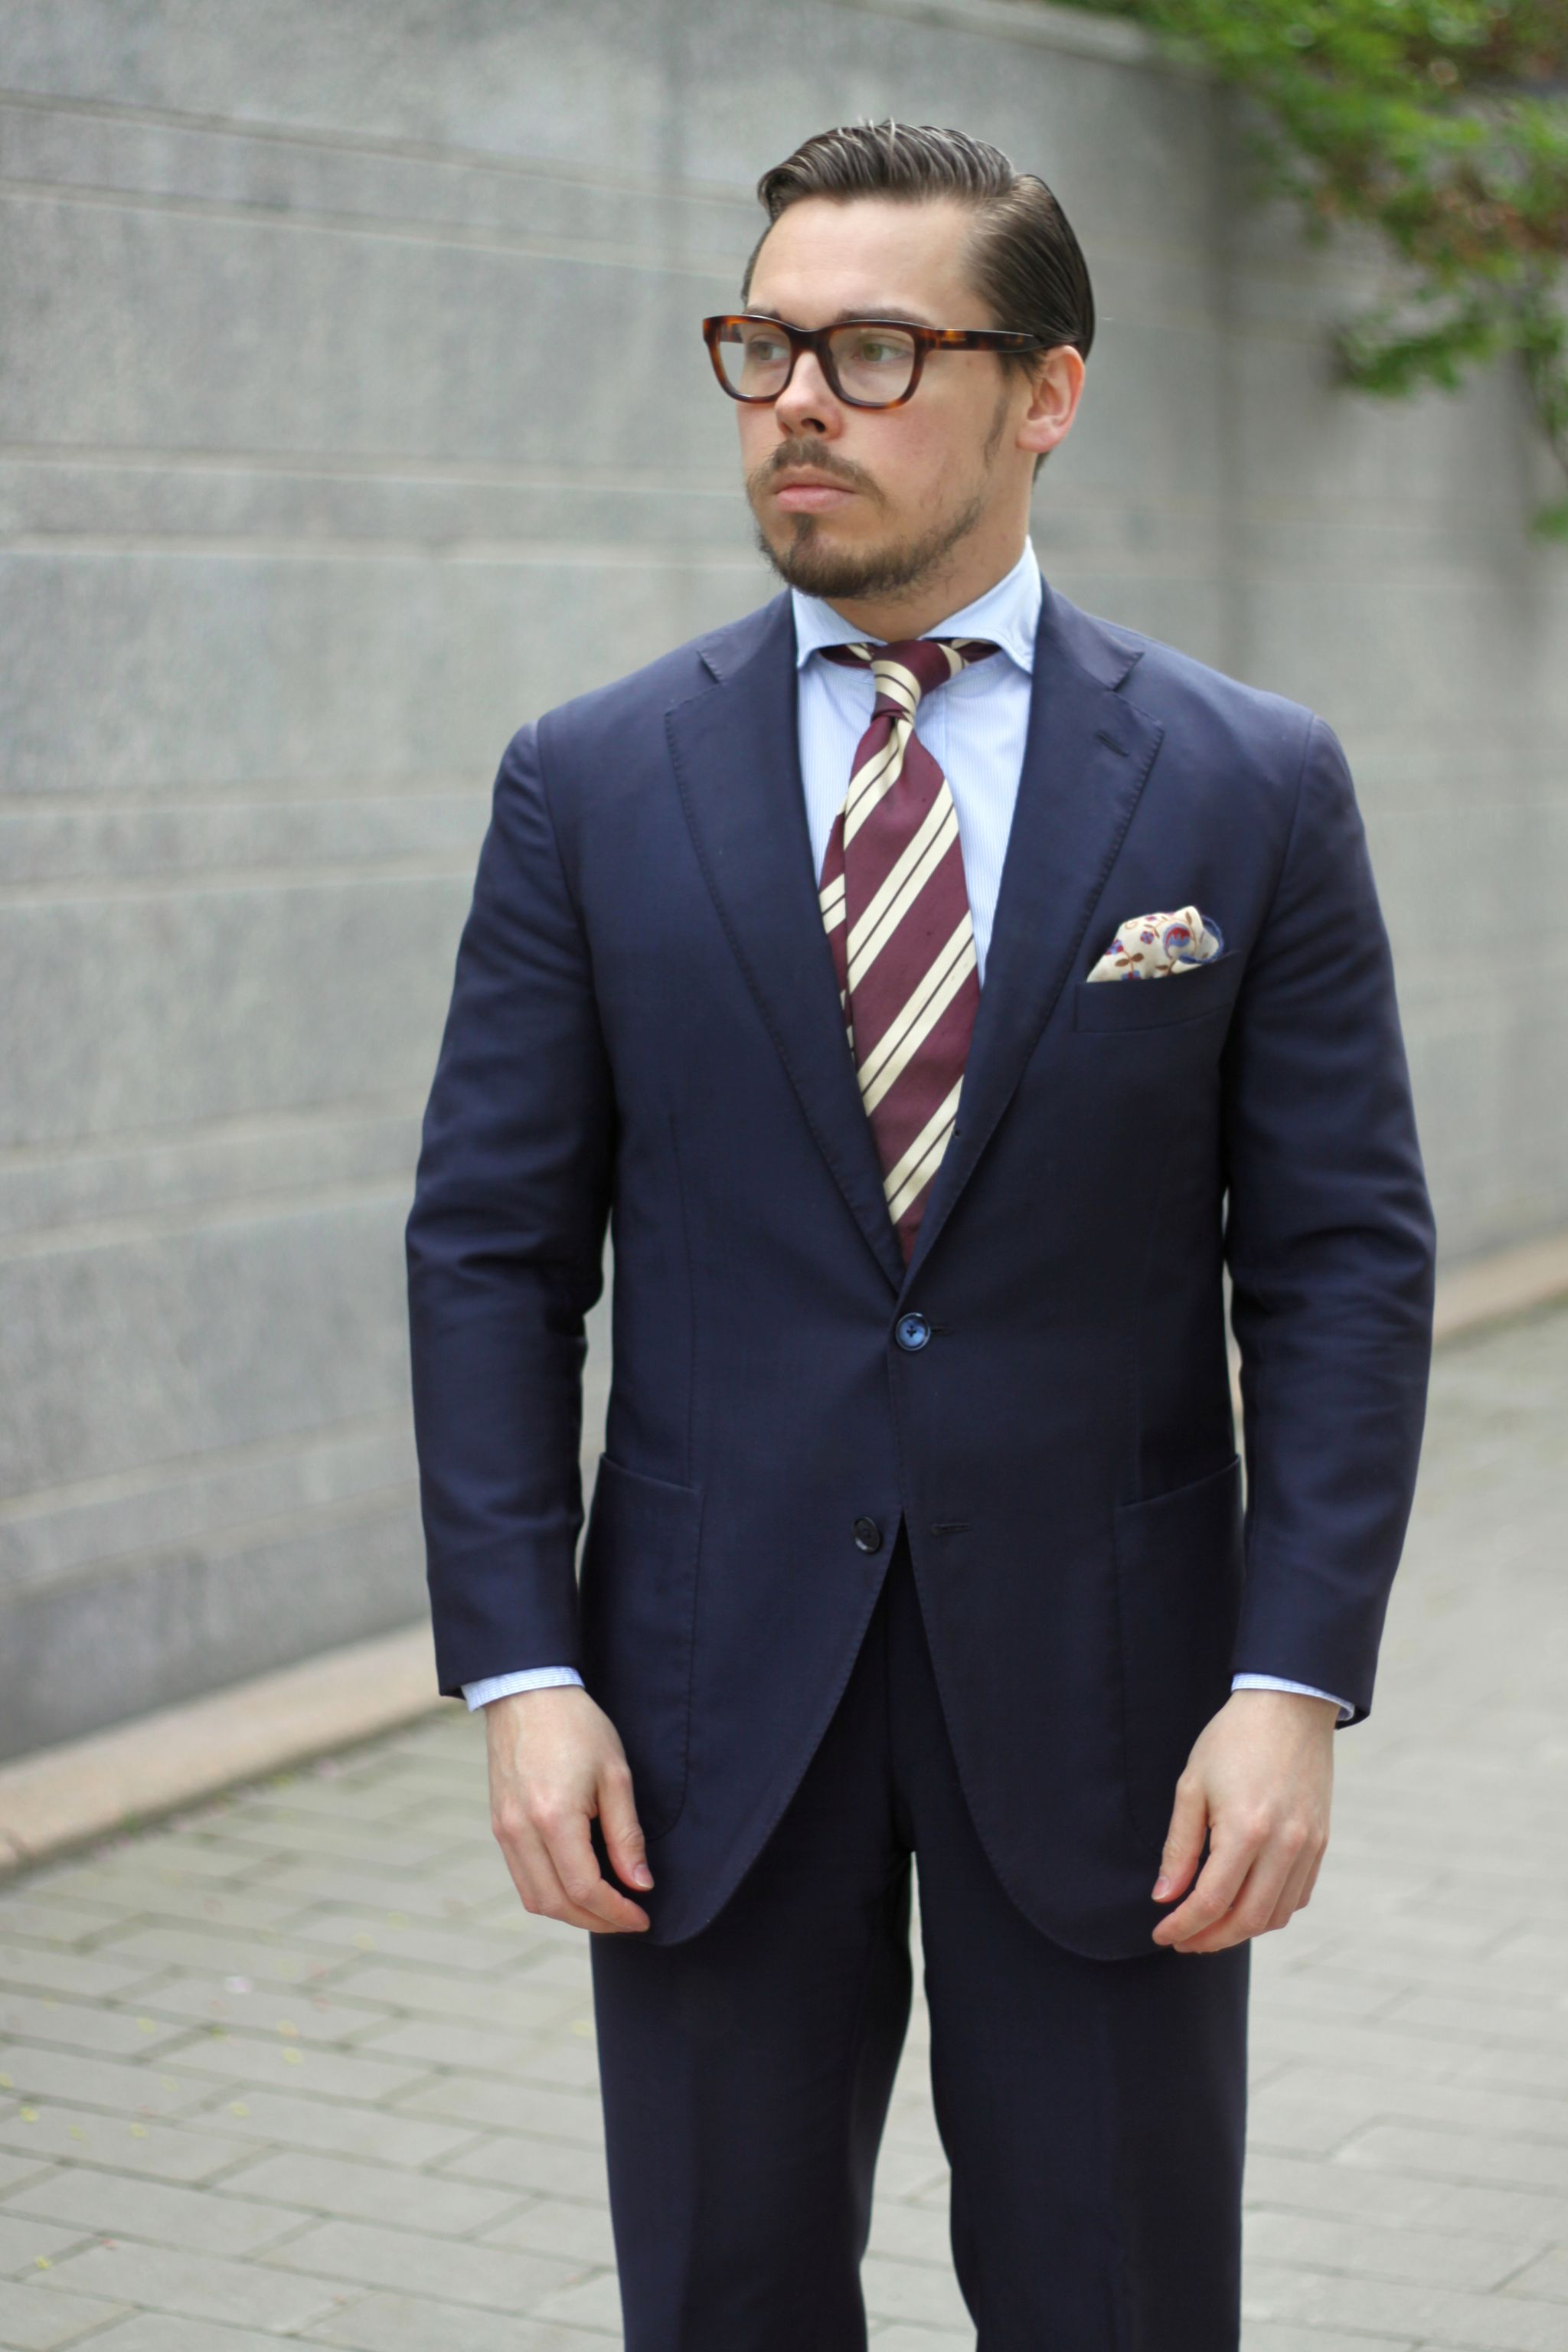 Burgundy accessories - navy blue wool suit with light blue shirt and burgundy tie